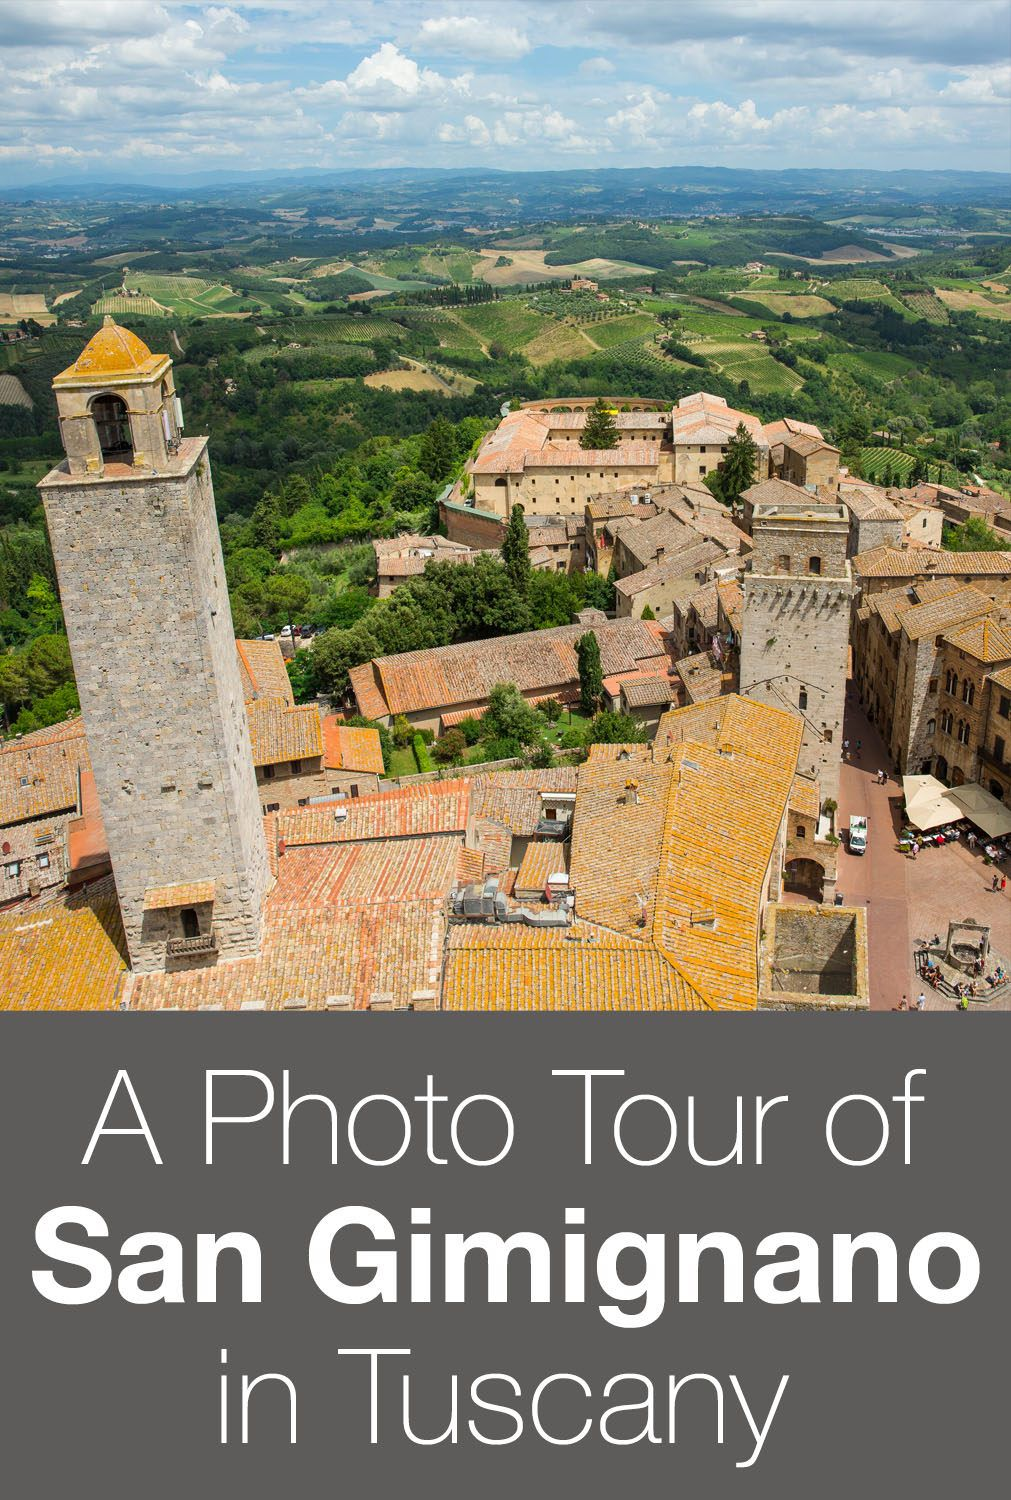 Photo Tour of San Gimignano in Tuscany, Italy